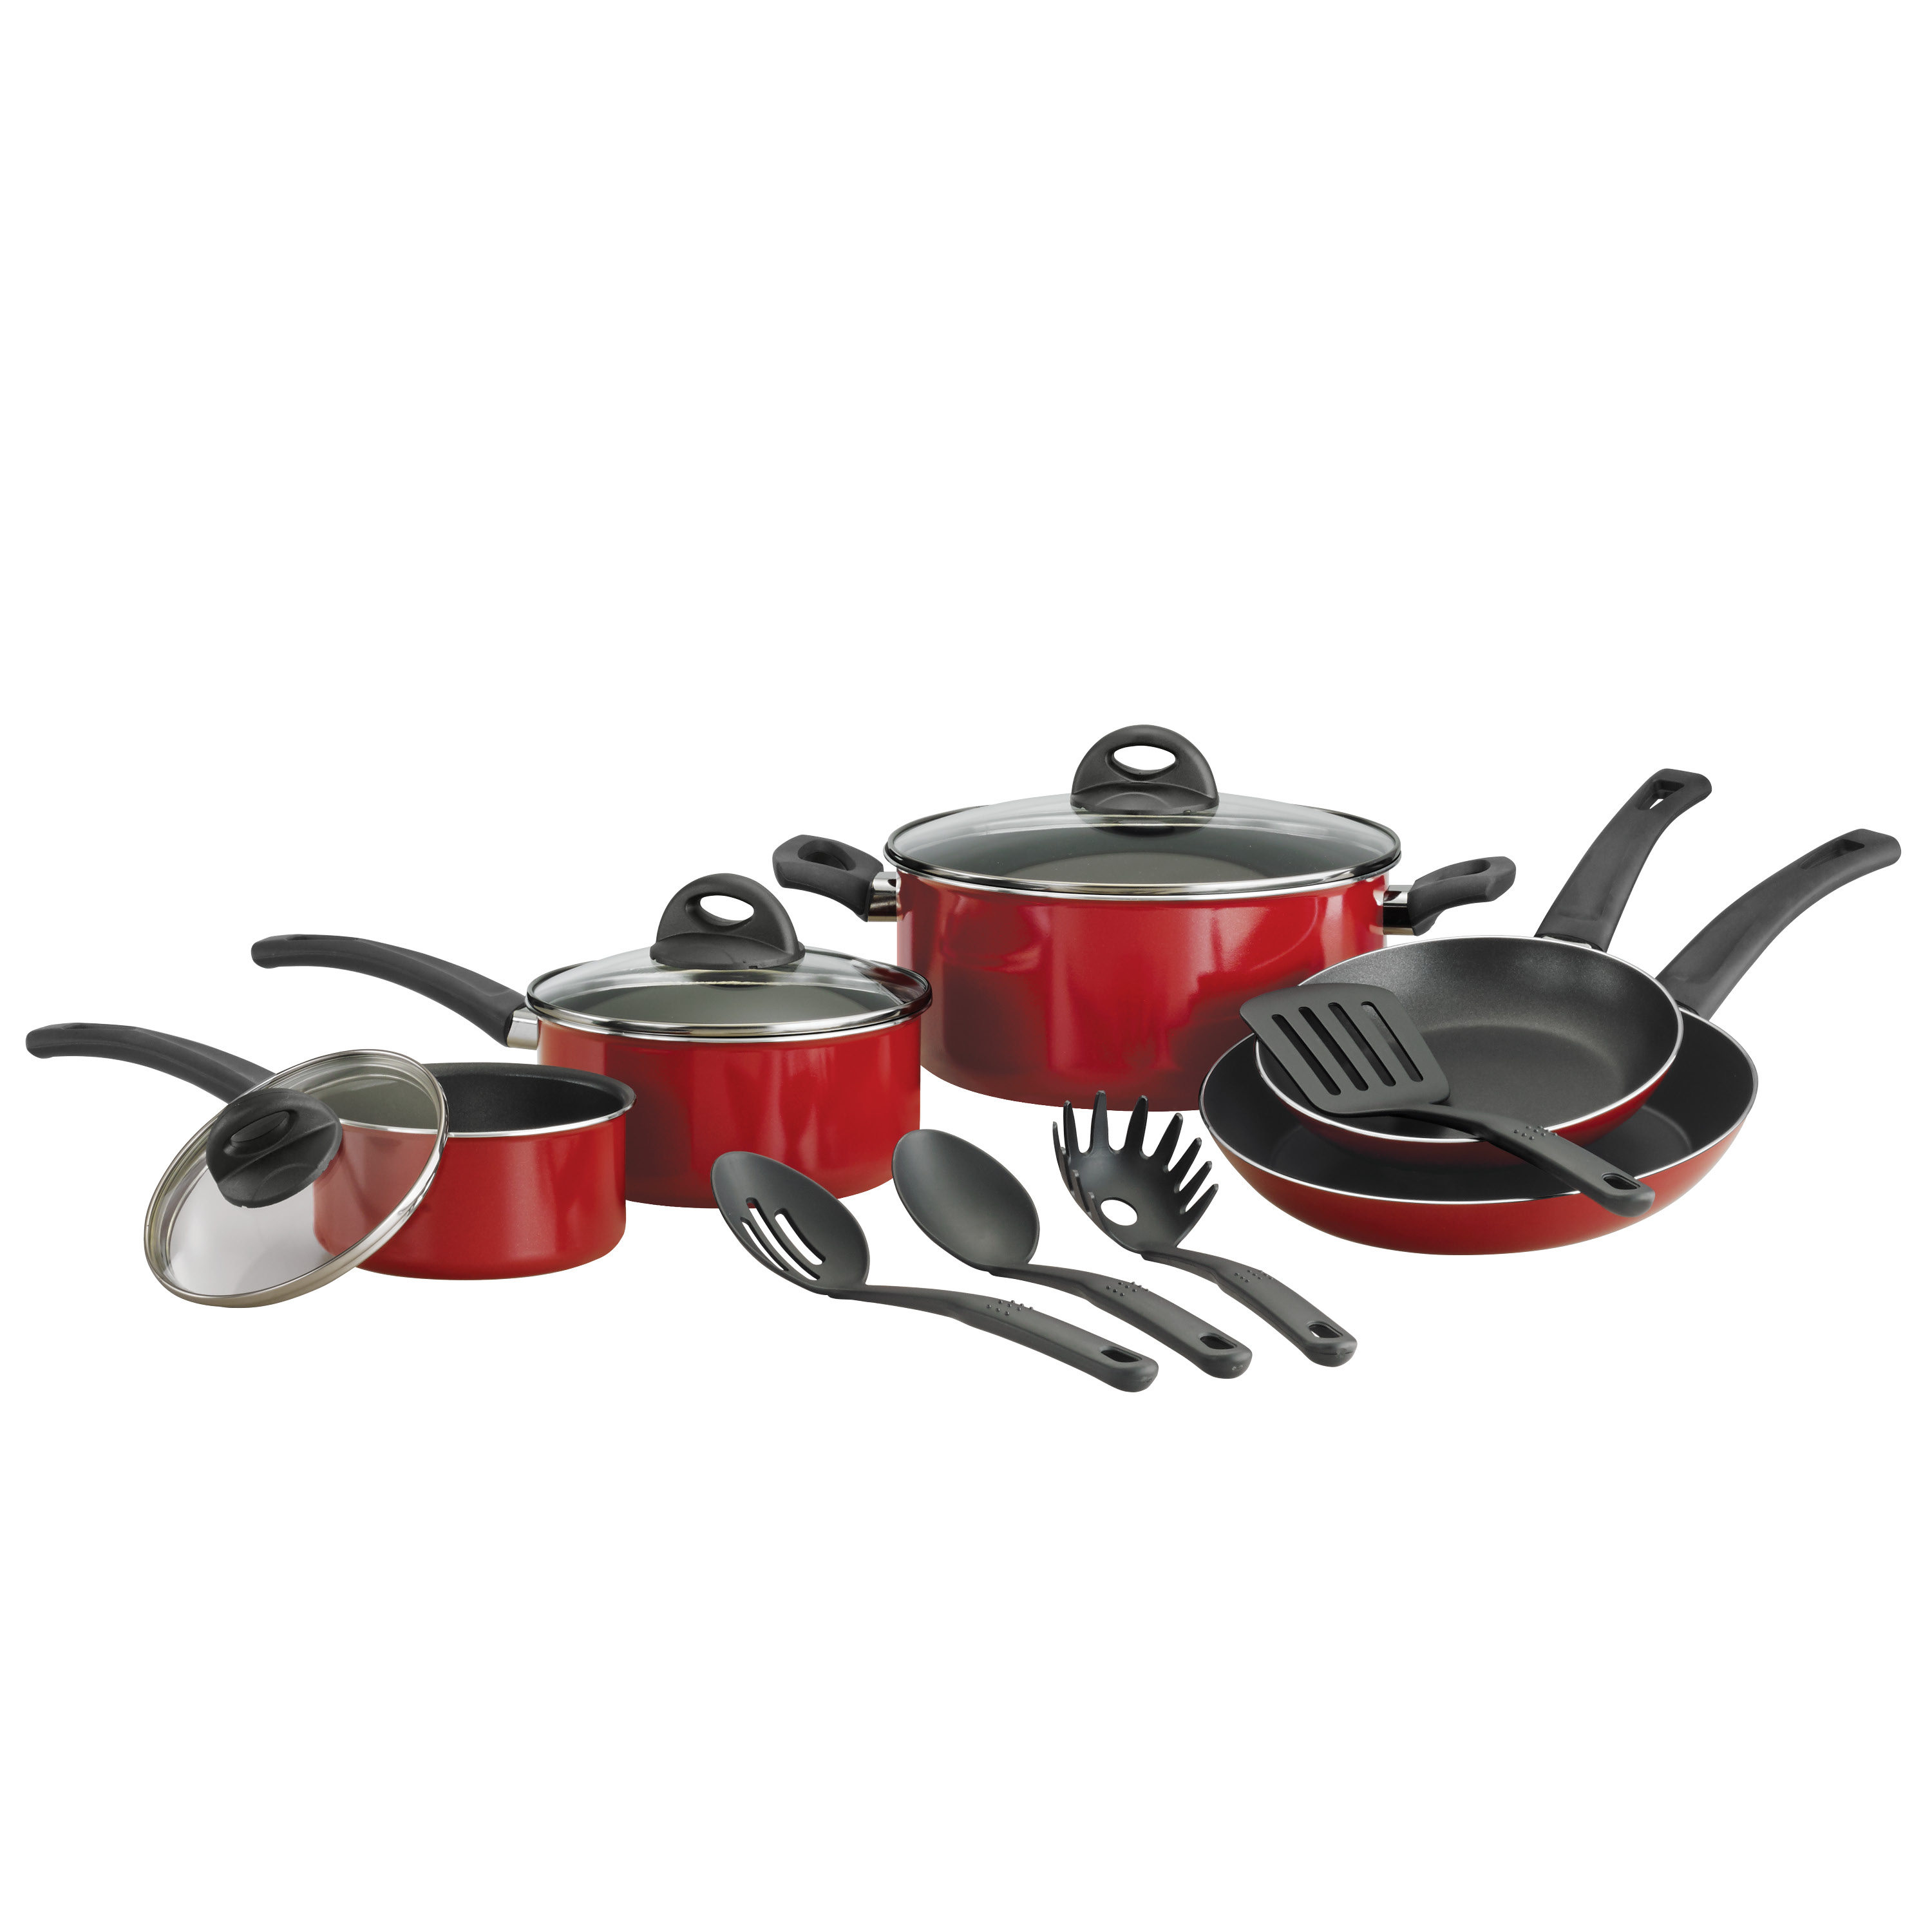 Tramontina 12-Piece Everyday Nonstick Cookware Set, Red